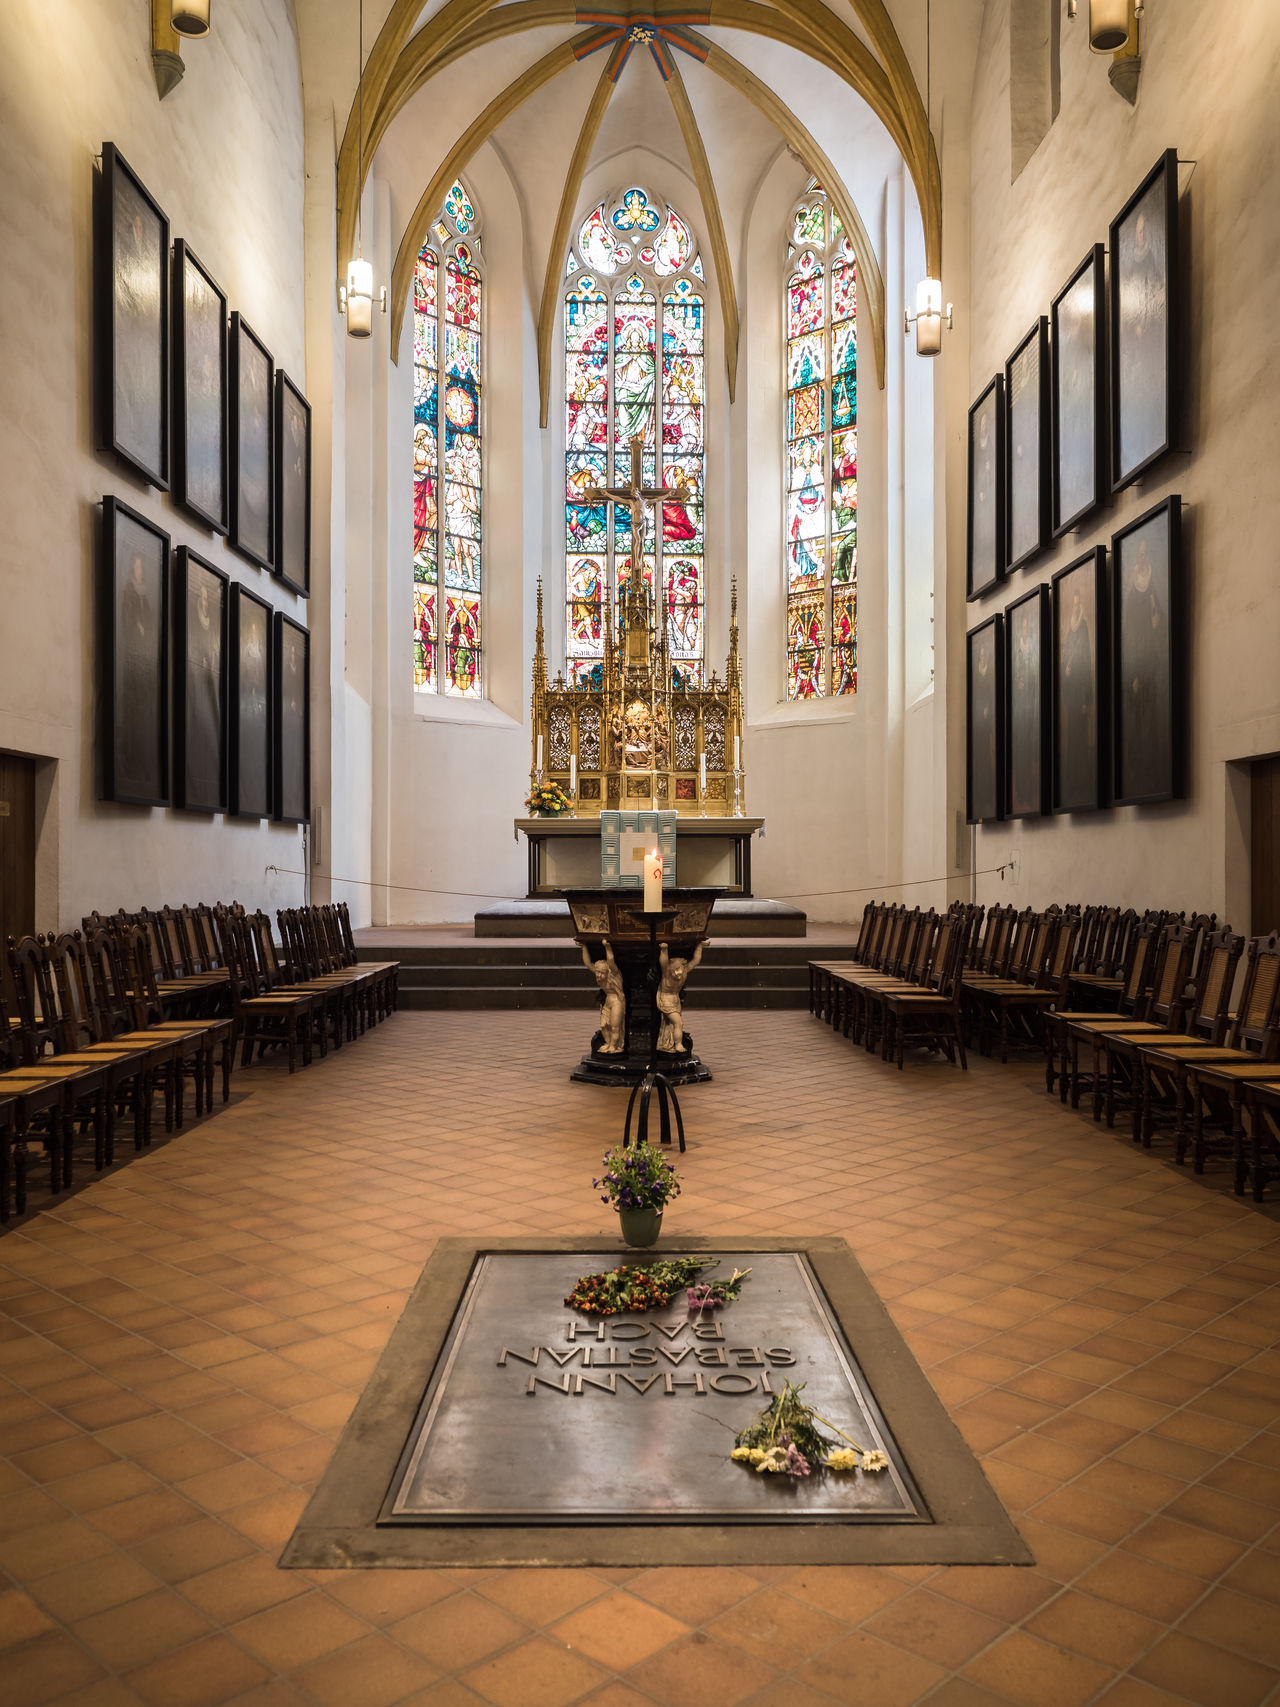 """This is the famous """"Thomaskirche"""" (church). You see here the grave of Johann Sebastian Bach. Altar Architecture Church Church Architecture Classical Music Composer Cross Culture Day Grave History Indoors  Johann Sebastian Bach Leipzig No People Place Of Worship Religion Spirituality Thomaskirche Window"""